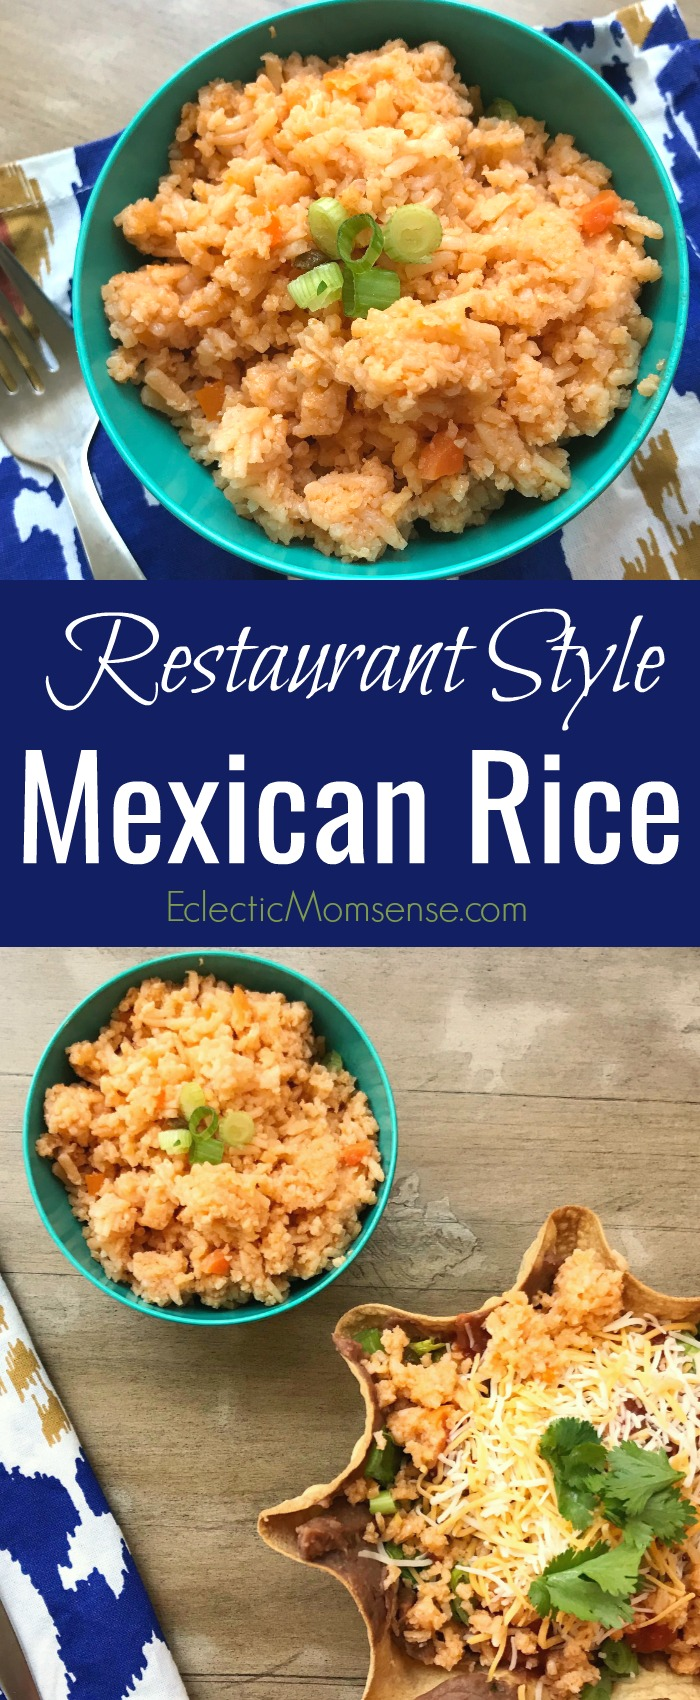 Try this simple recipe for Restaurant Style Mexican Rice! Tastes just like your favorite Mexican food joint. #recipe #food #rice #MexicanFood